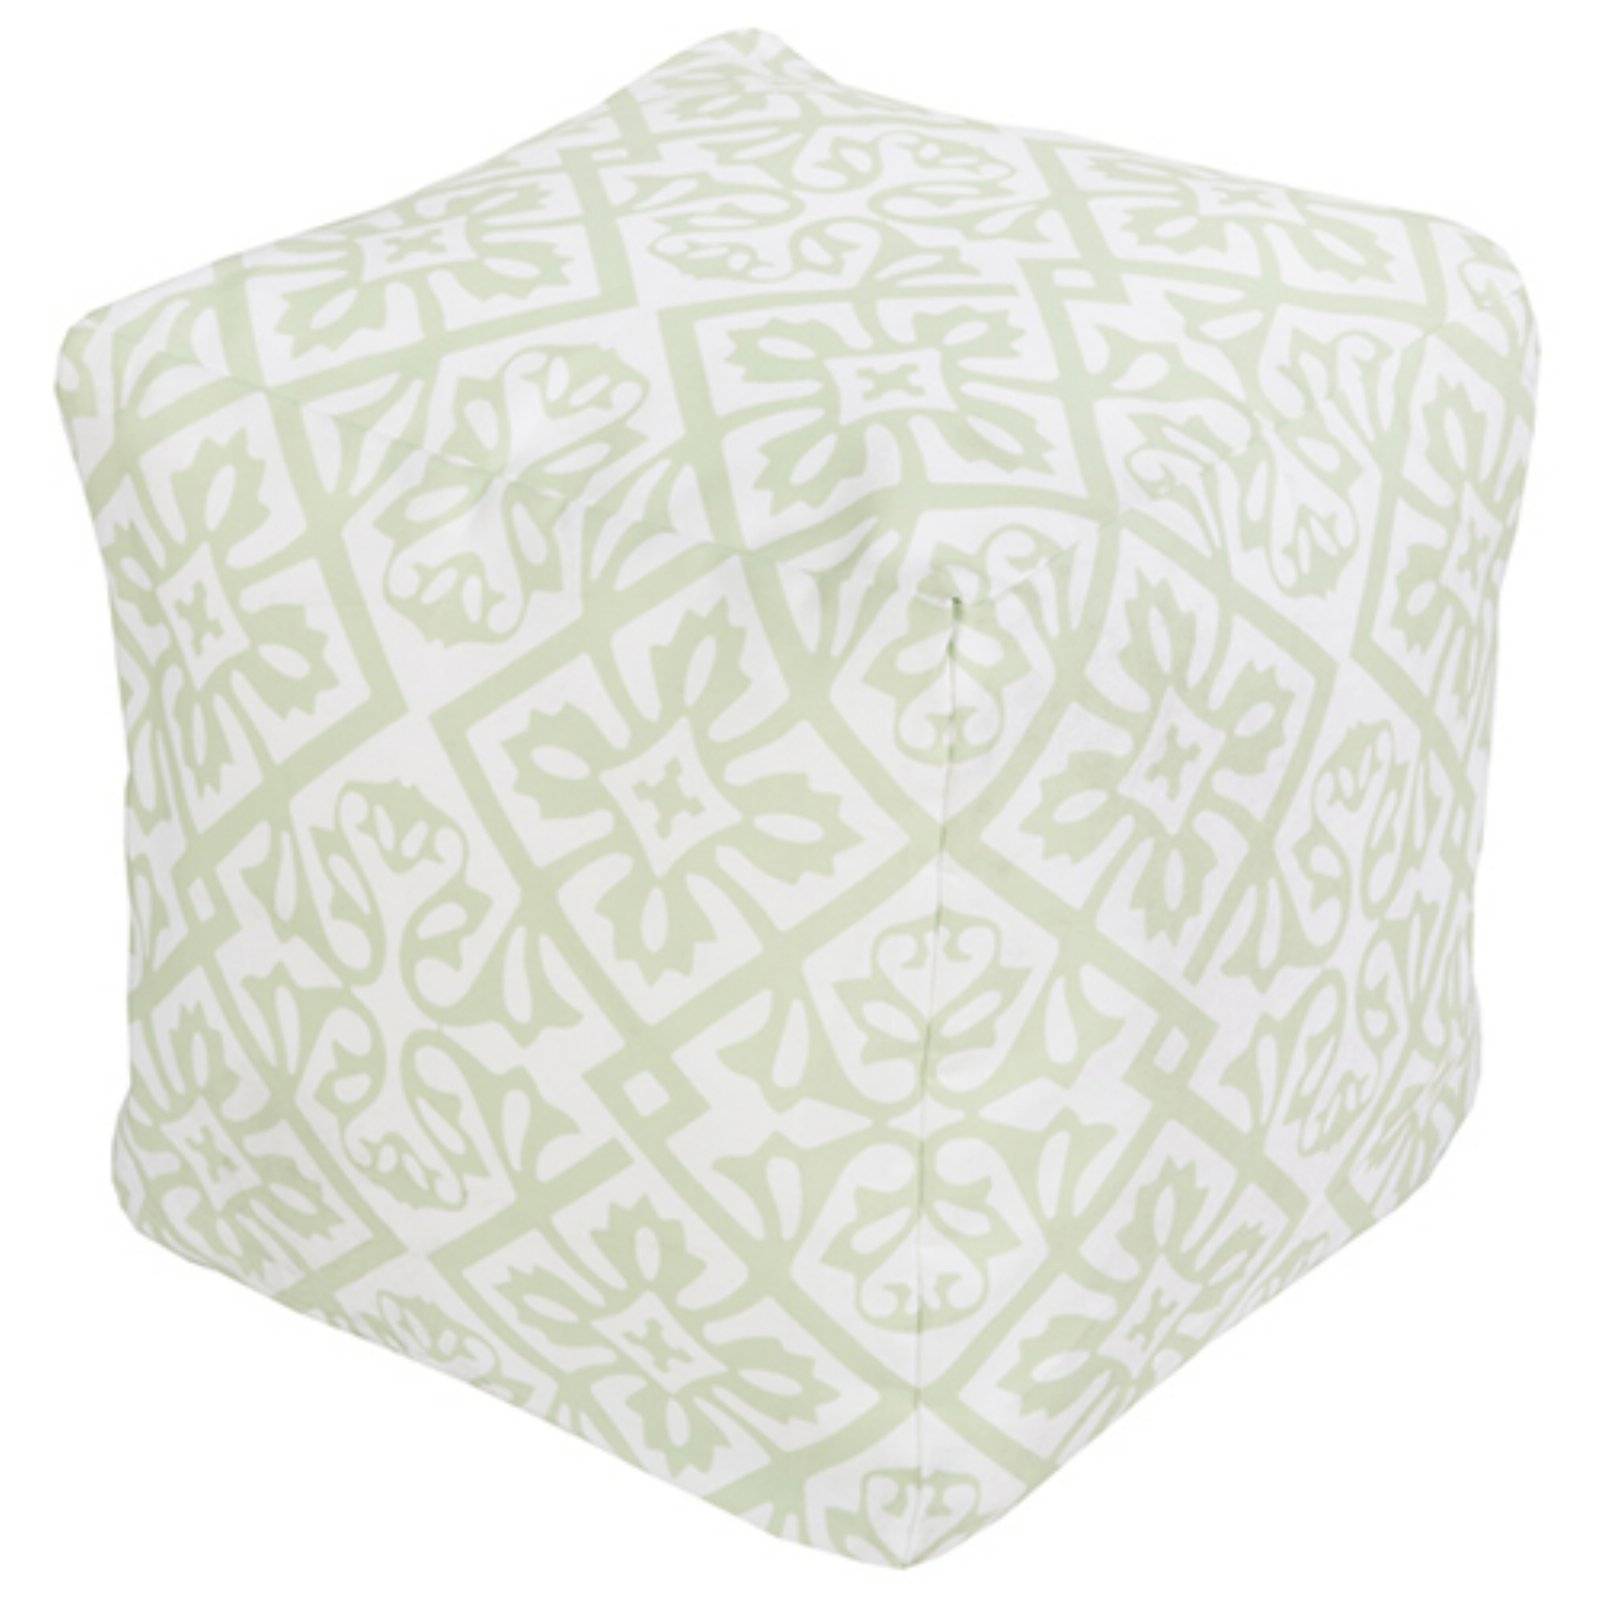 Surya 18 x 18 in. Outdoor Flower Cube Pouf by Surya